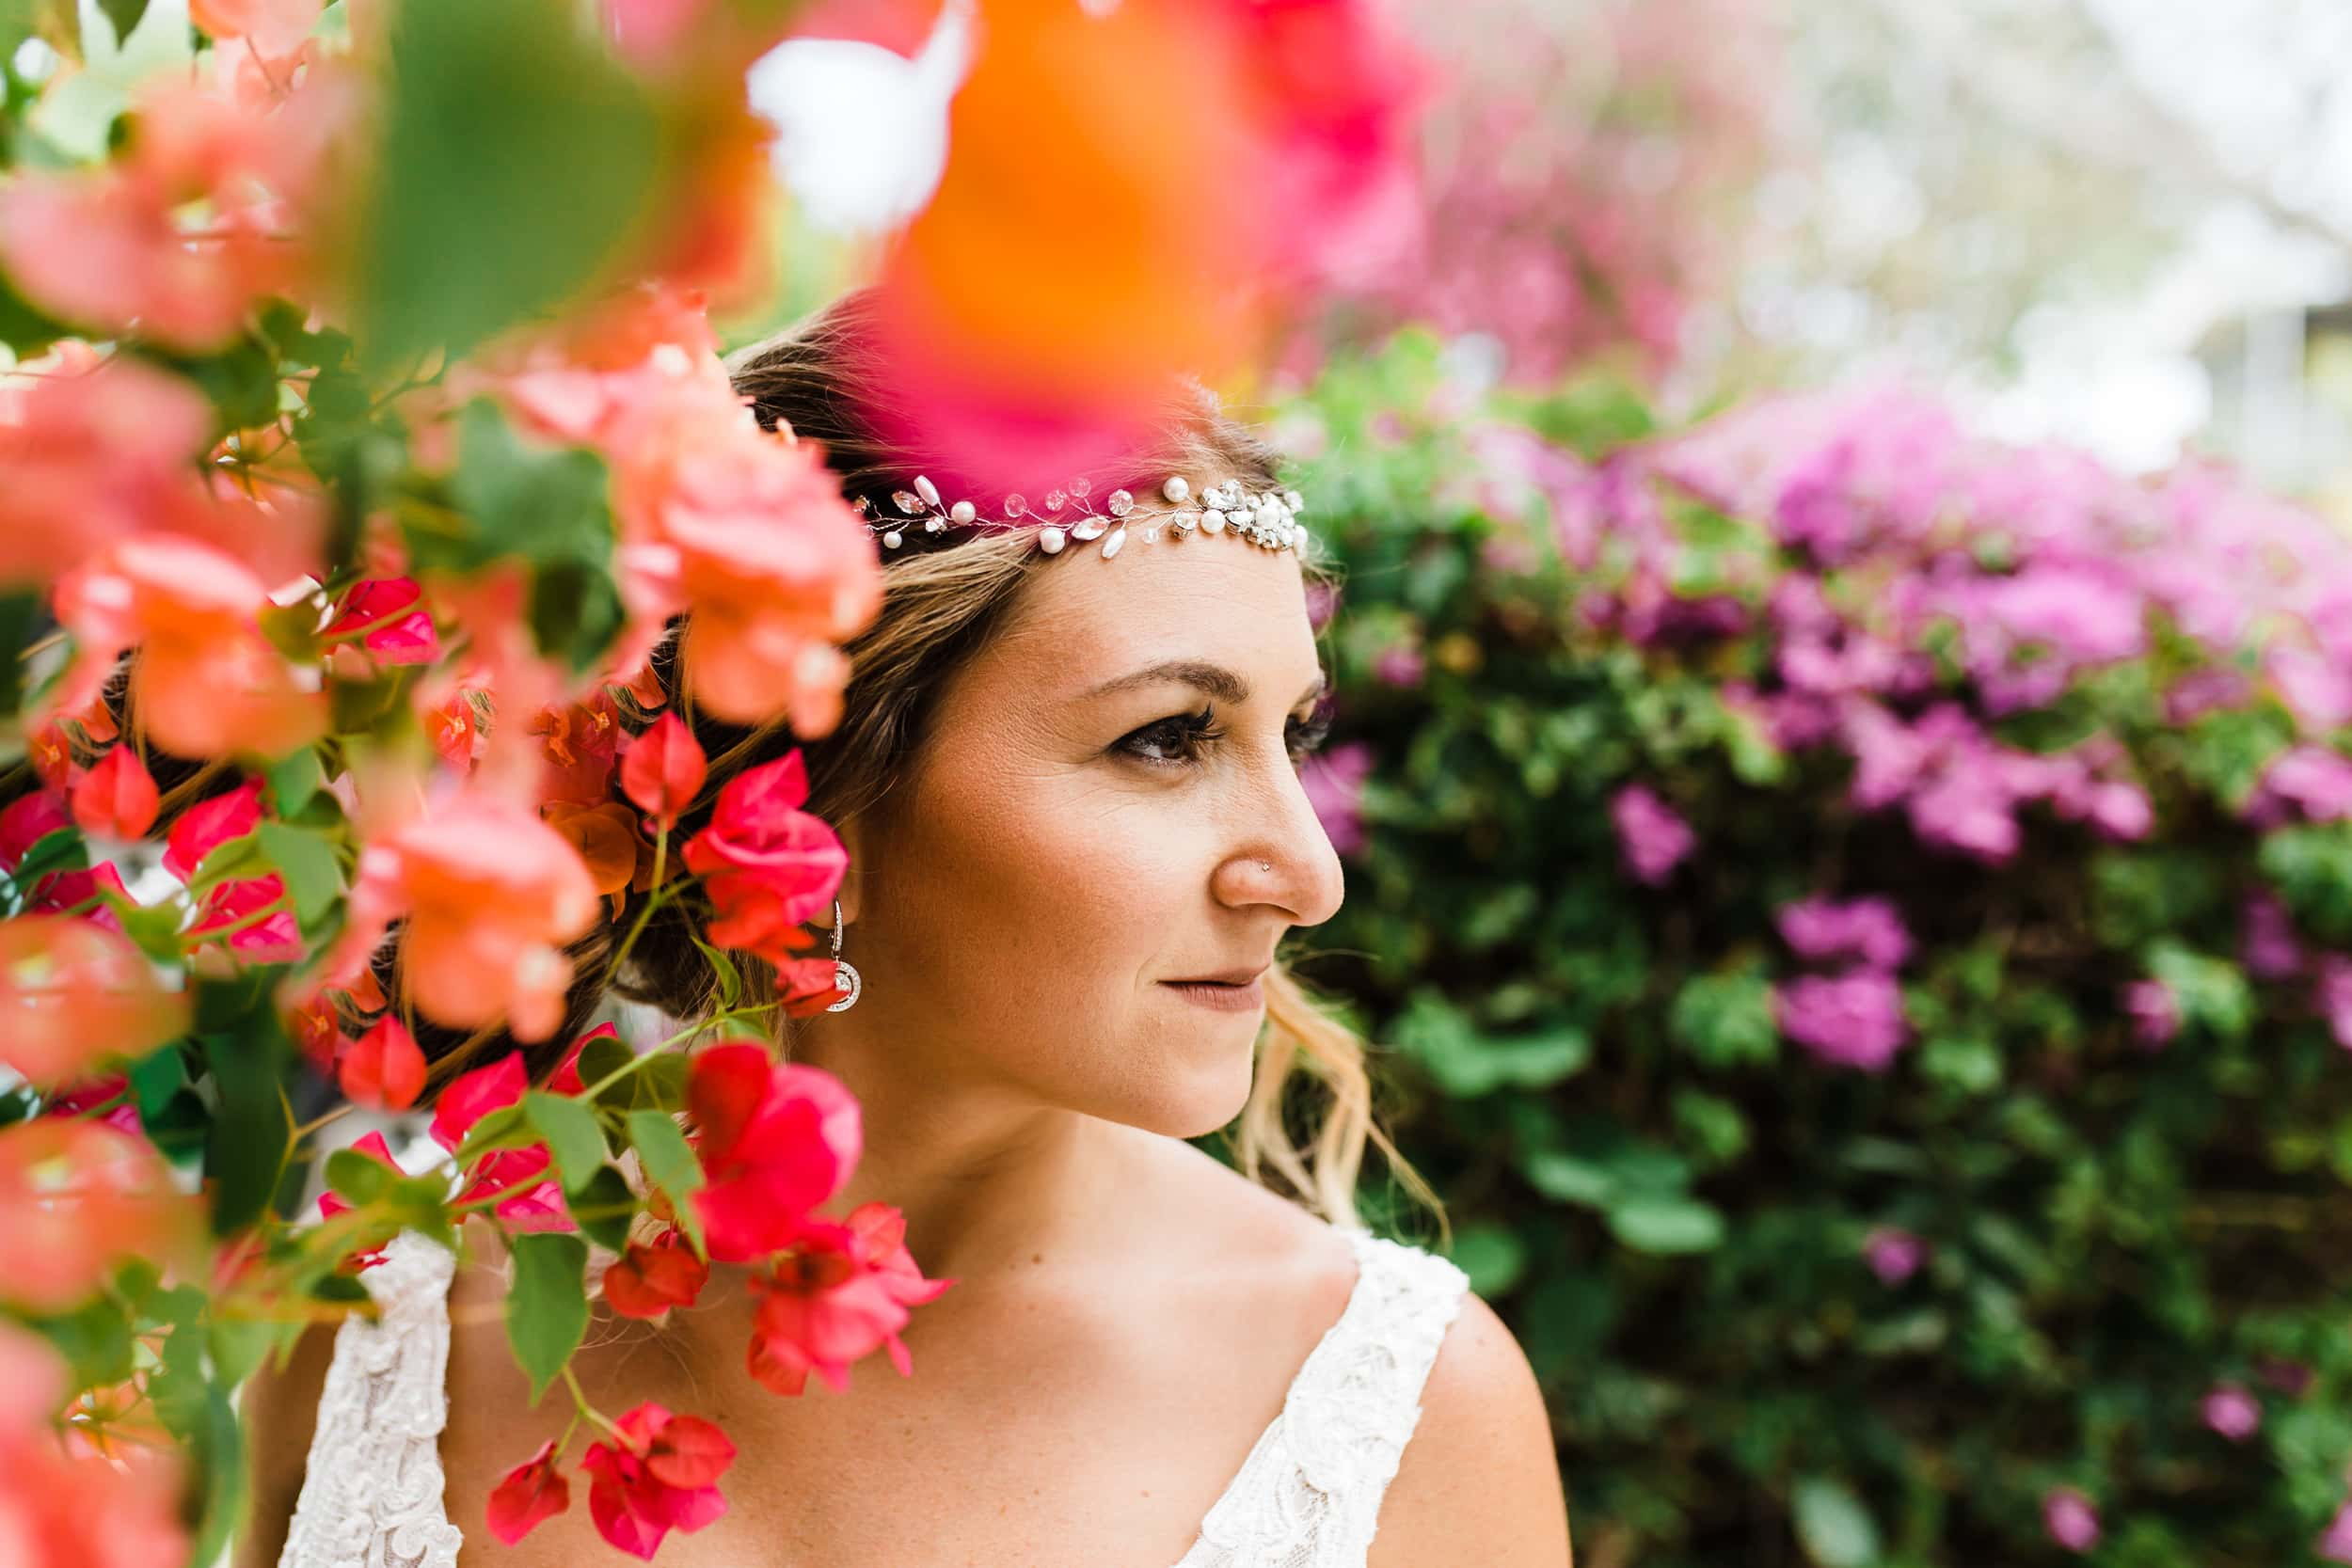 boho bride wearing bead crown standing among pink and fuchsia flowers with purple and green in the background